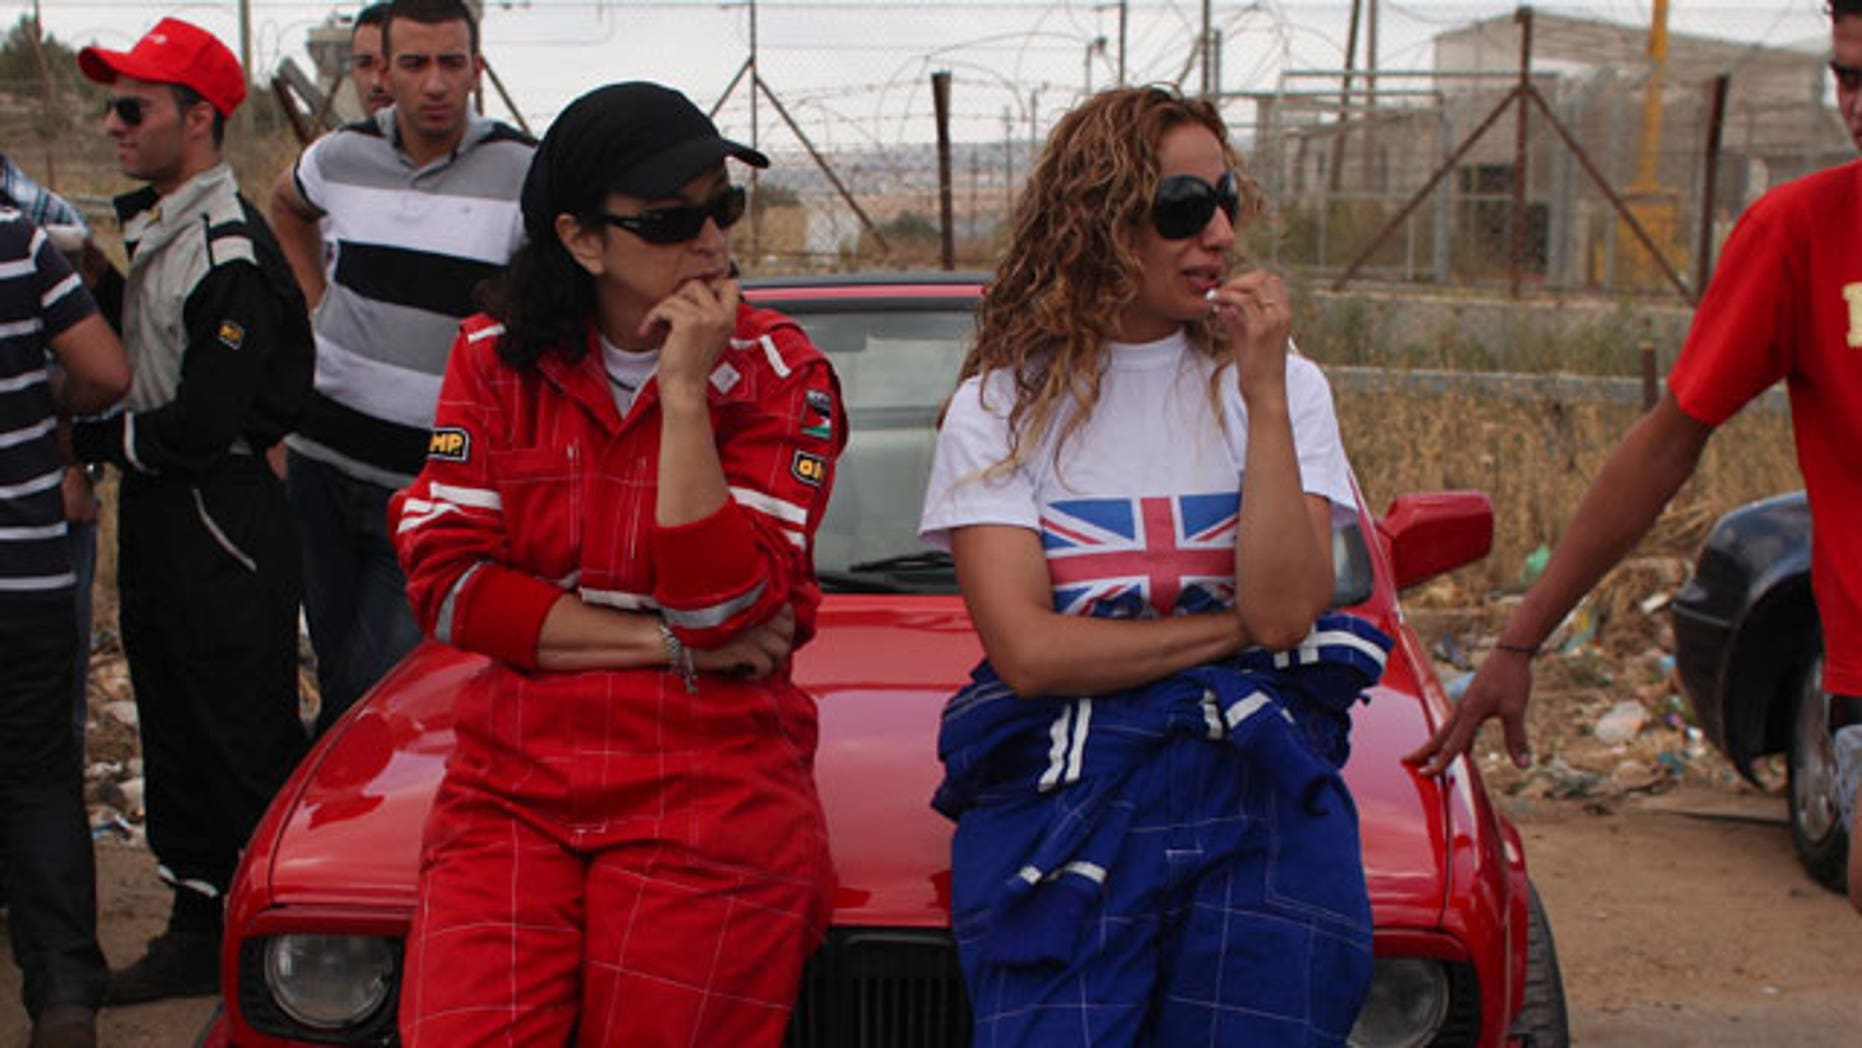 In this photo taken Friday, June 25, 2010, Palestinian Suna Awedia, center left, and Samia Khoury, center right, race car drivers, await their turns to race in the West Bank town of Ramallah. Palestinian women are speeding into record books by participating in their first all-female car racing team, the Speed Sisters. Along the way, they're crashing through another gender barrier in this conservative Muslim society.